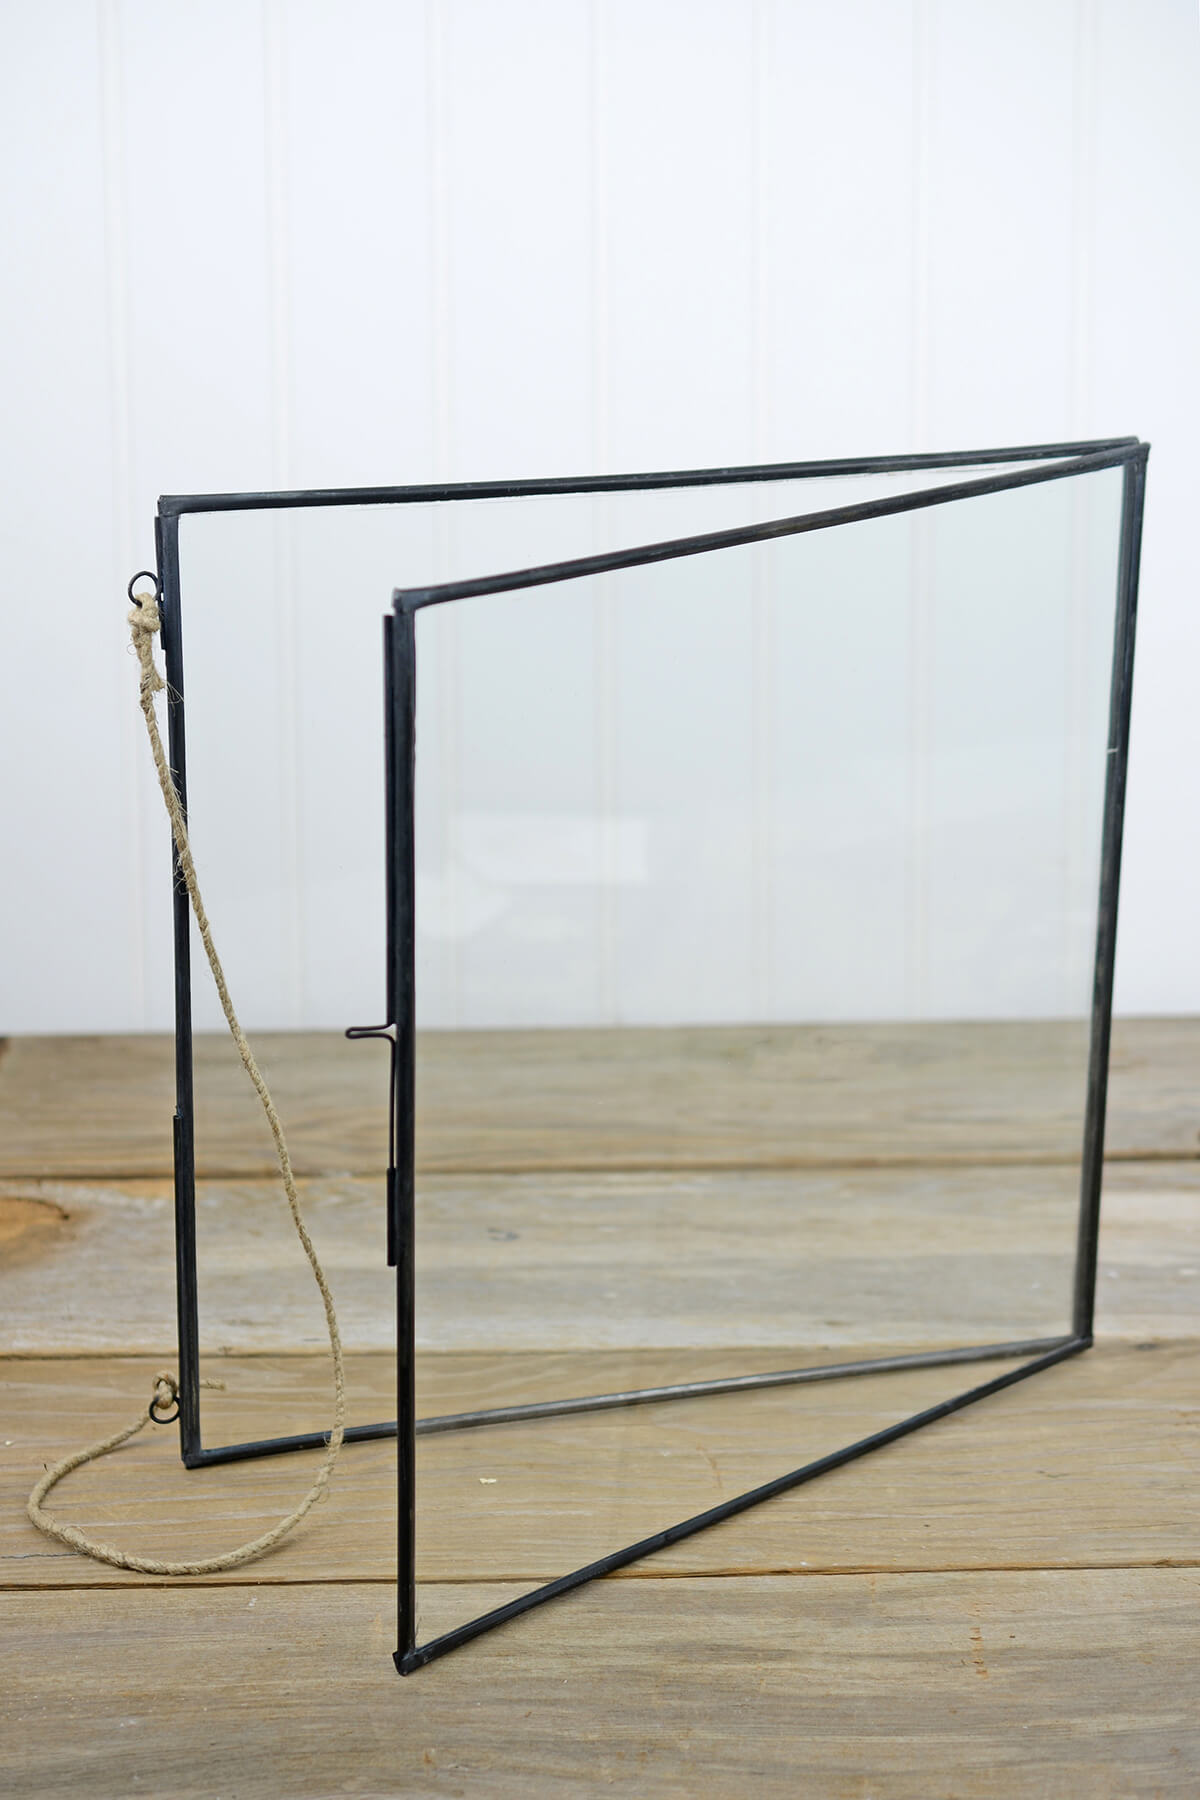 hanging metal double glass frame 14 x 1475 - Double Glass Frame